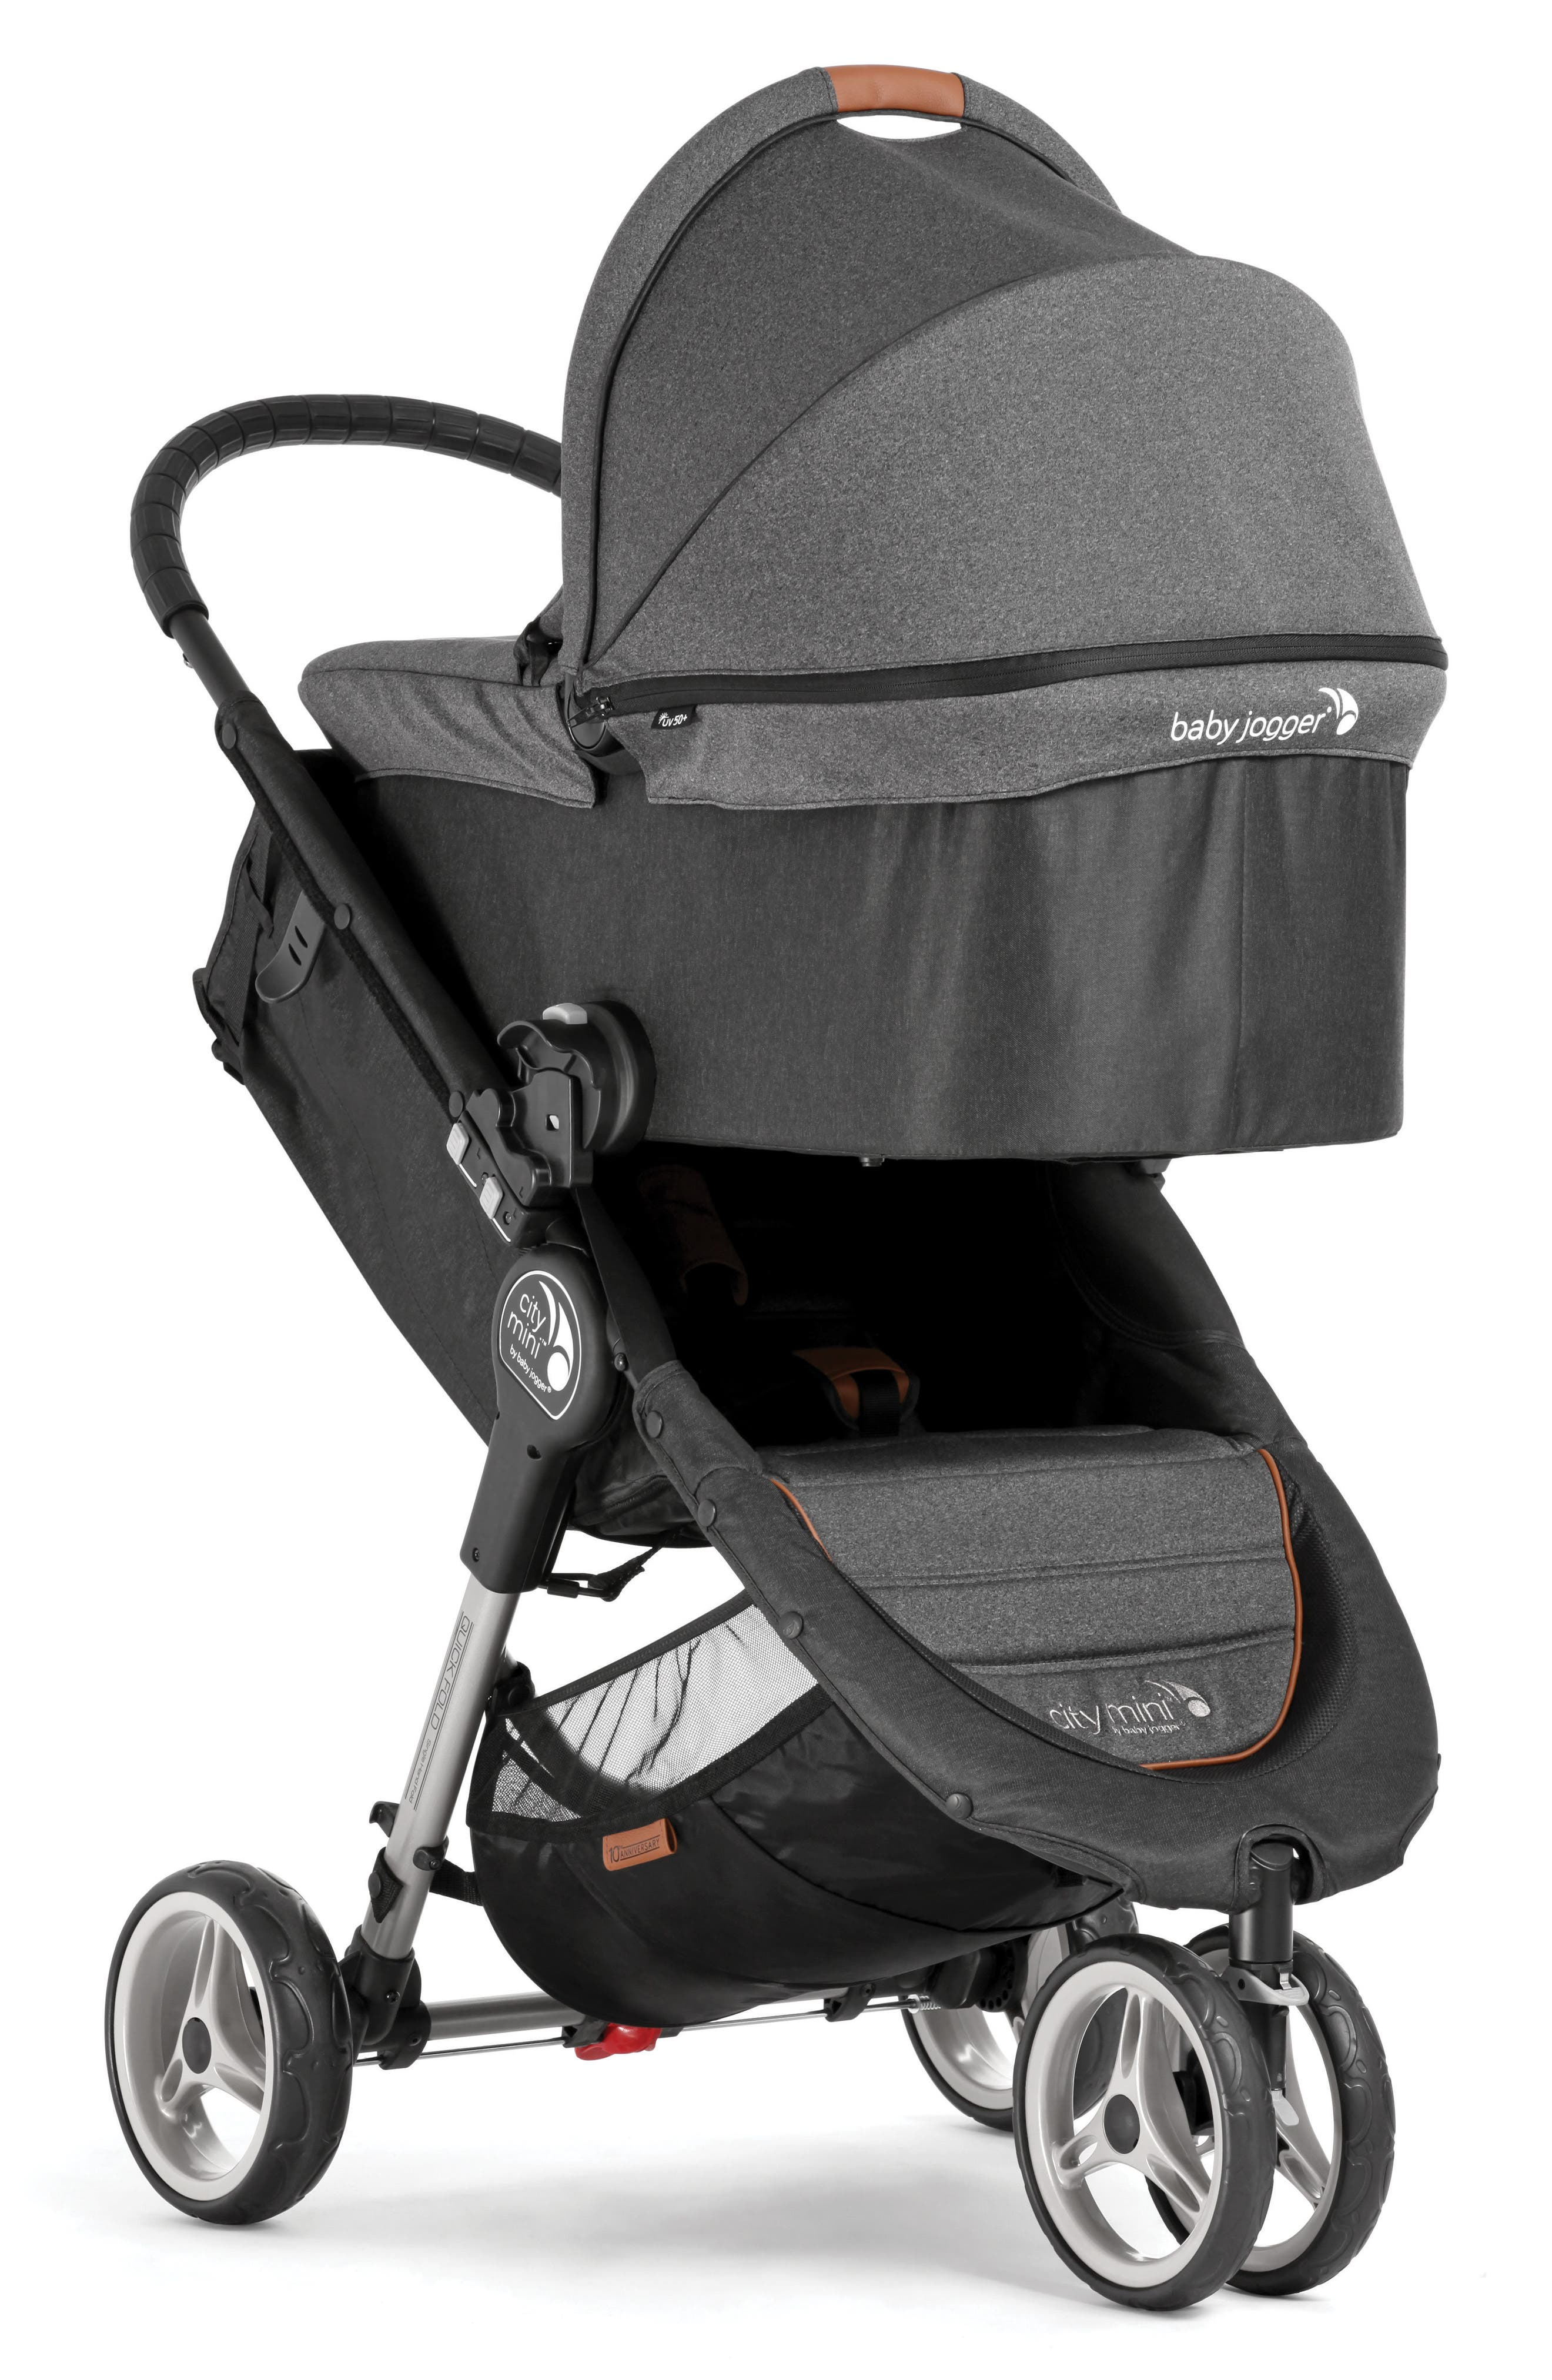 Deluxe Pram Converter Kit for City Mini<sup>®</sup> 2018 Special Edition 10-Year Anniversary All-Terrain Stroller,                             Alternate thumbnail 6, color,                             Grey